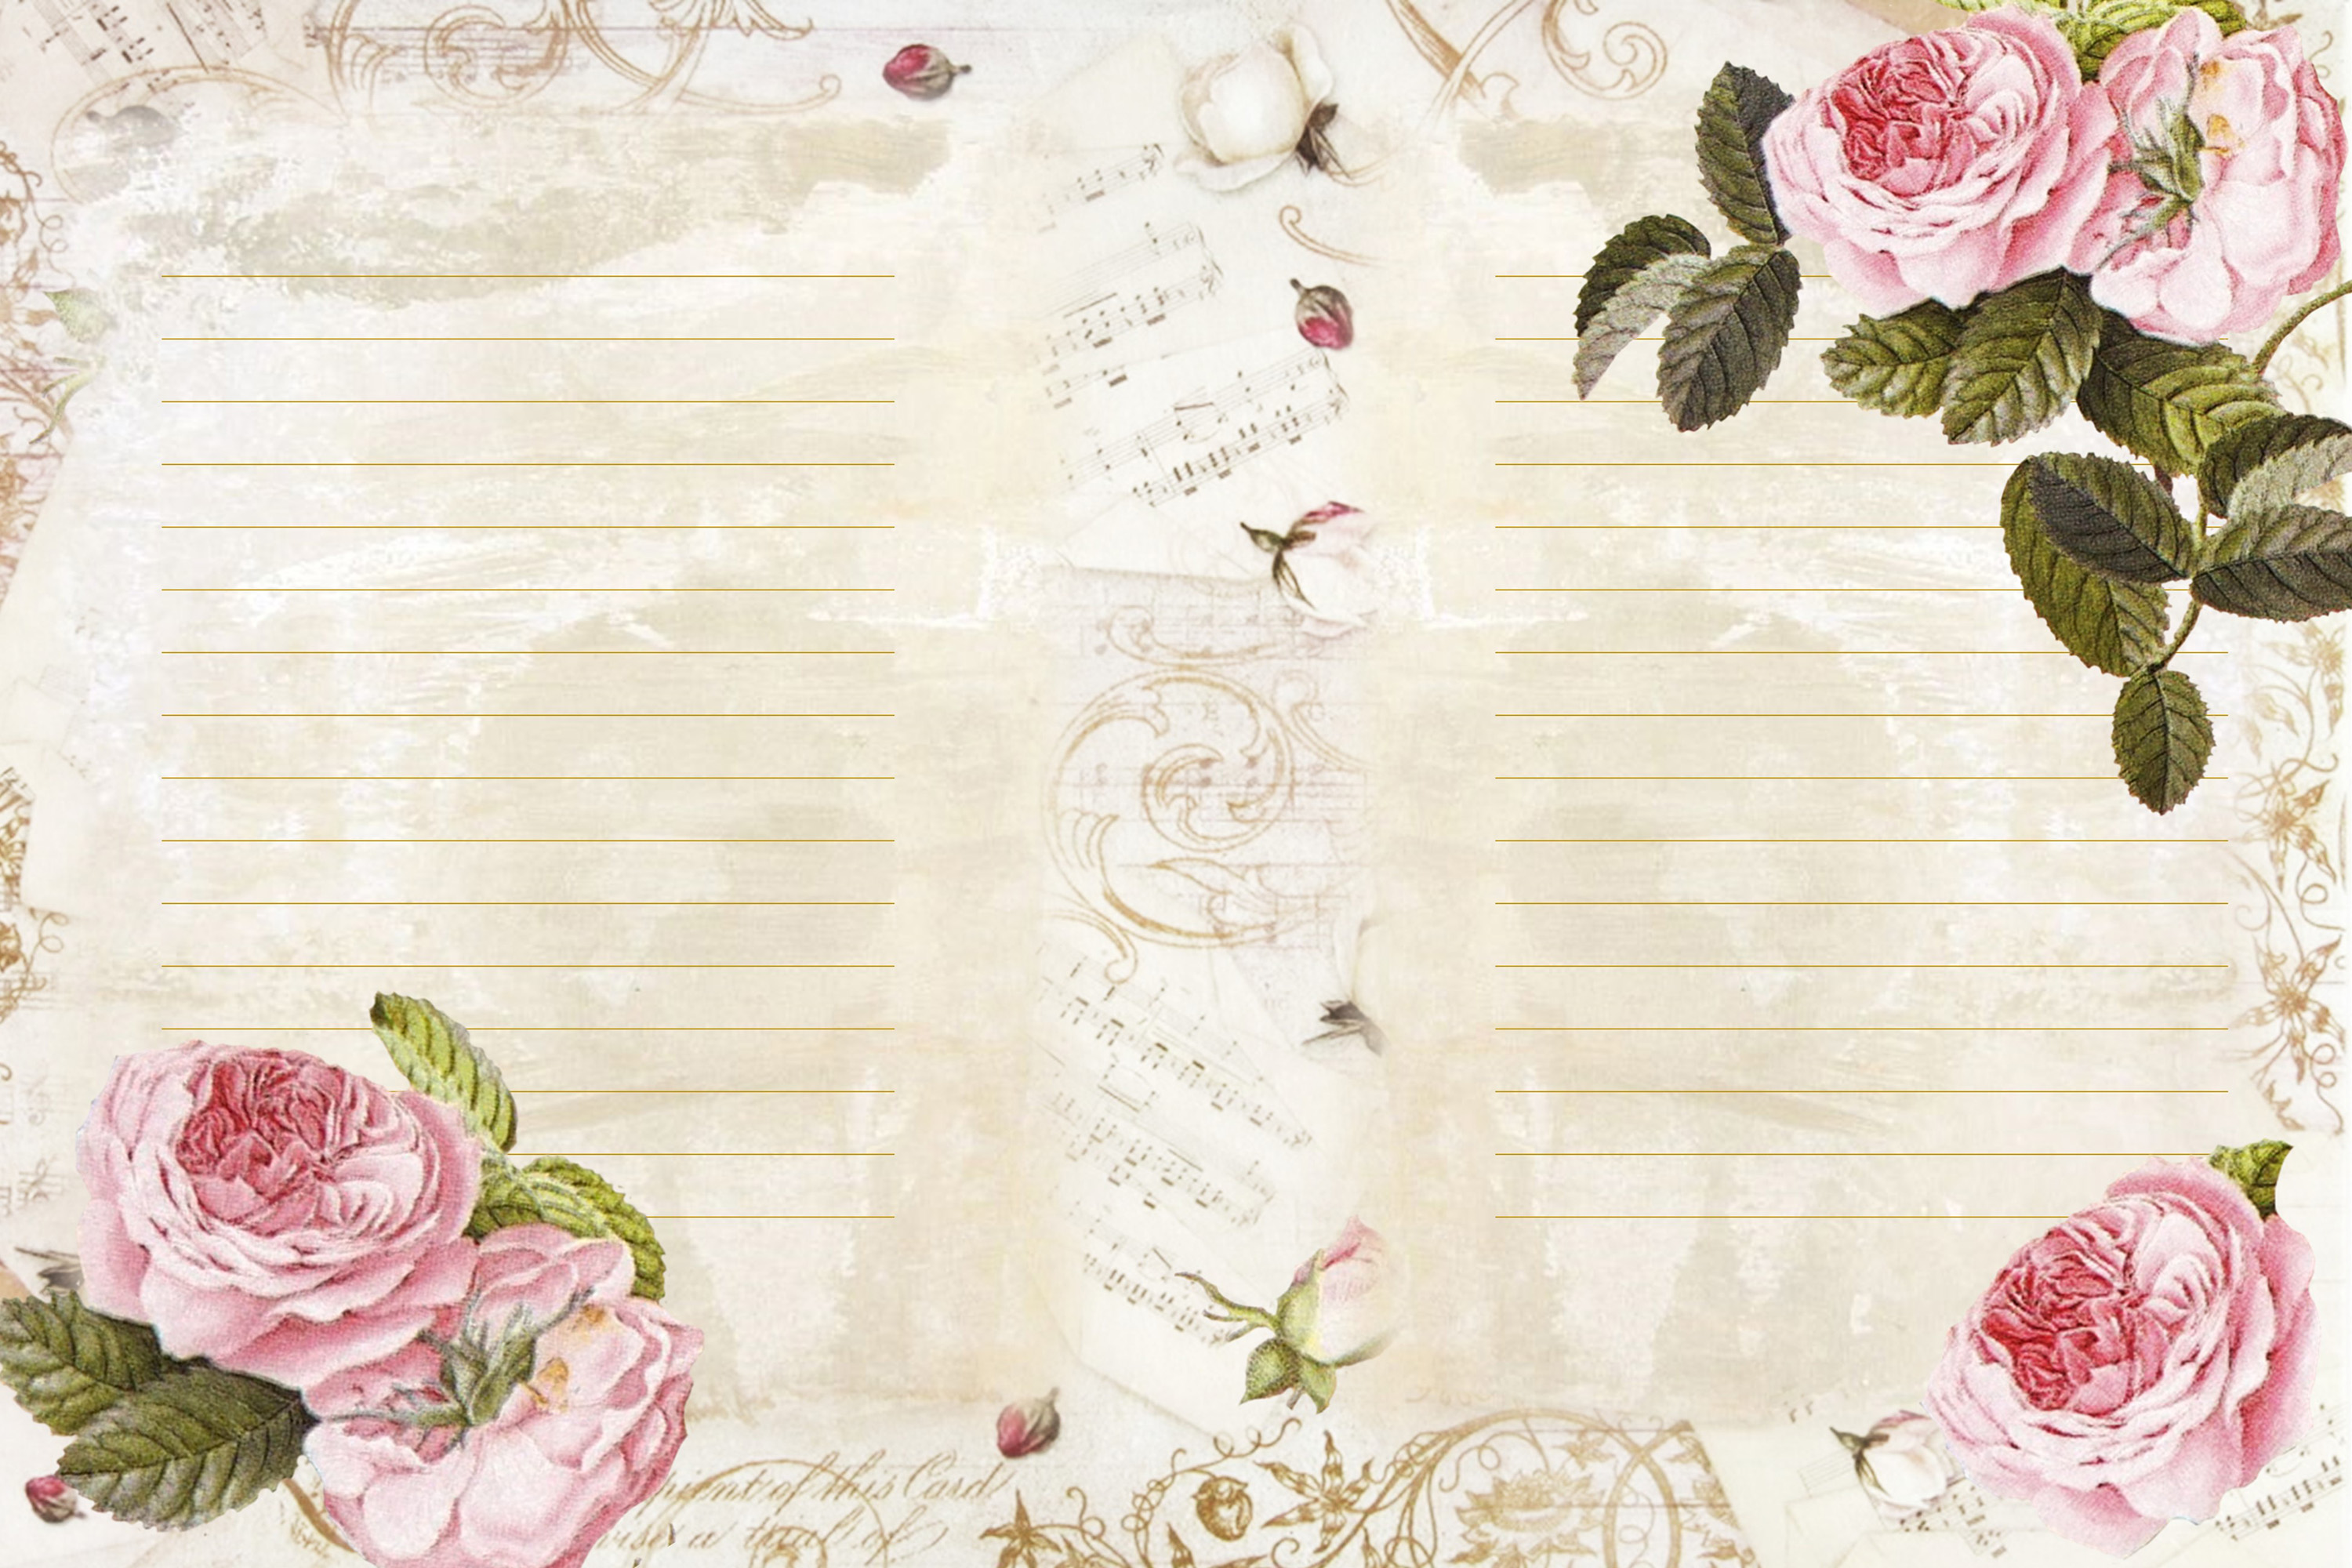 Journaling backgrounds with FREE ephemera PNG and JPEG CU example image 5